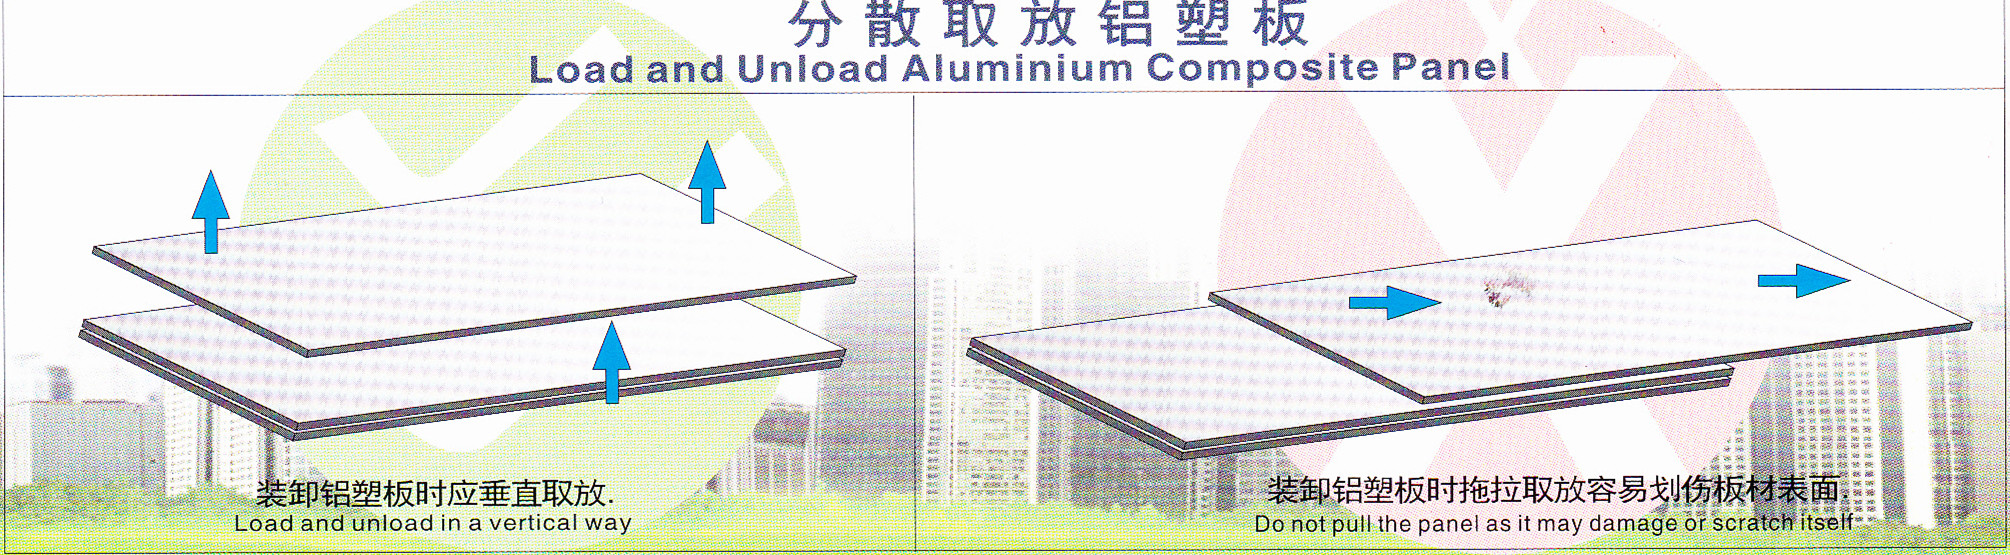 load and unload aluminium composite panel.jpg